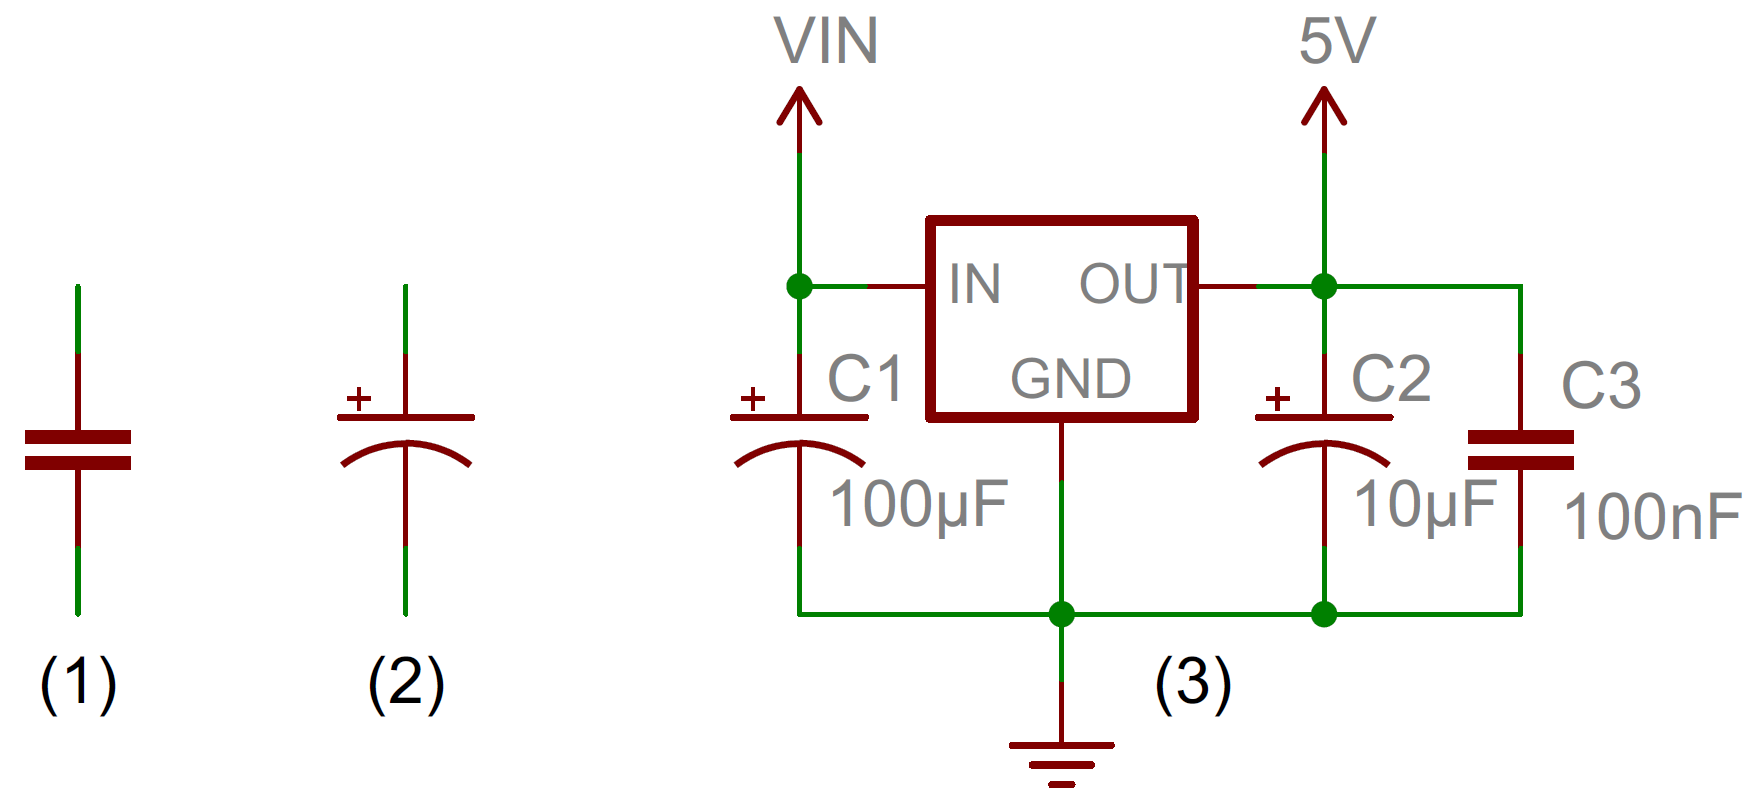 Capacitors Voltage Controlled Resistor Equivalent Circuit Model Basiccircuit Capacitor Symbols